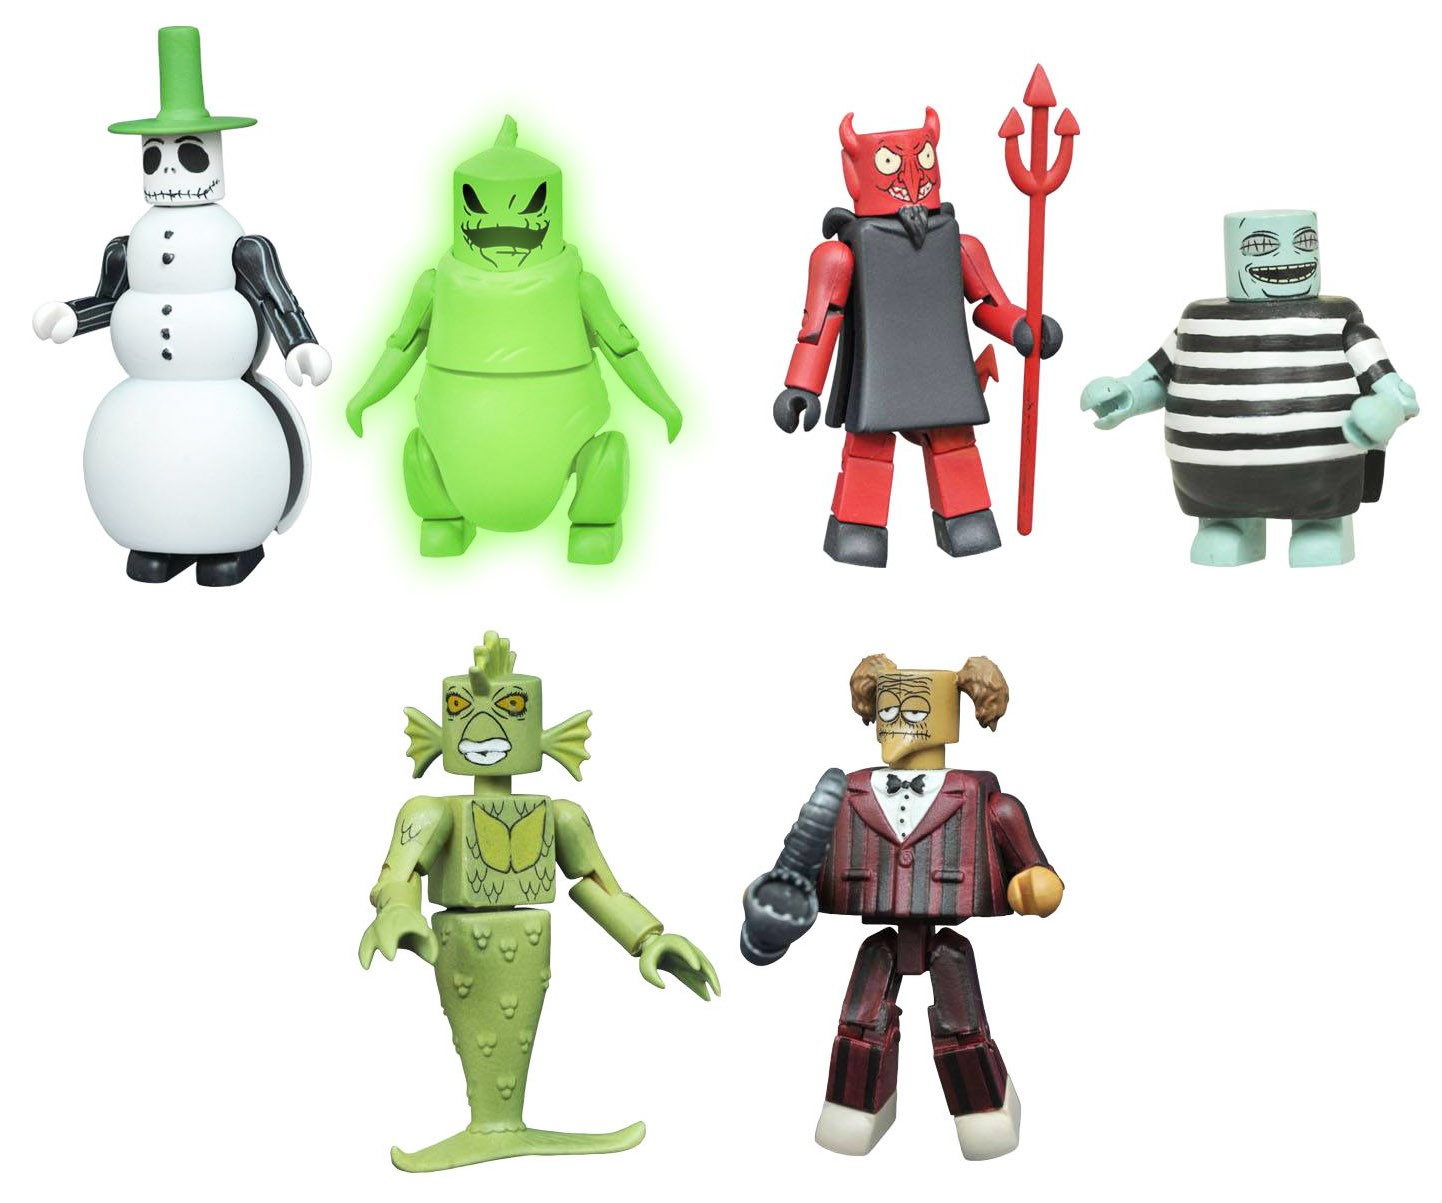 Free Comic Book Day Nightmare Before Christmas: Nightmare Before Christmas Minimates Series 4 Full Set Of 6